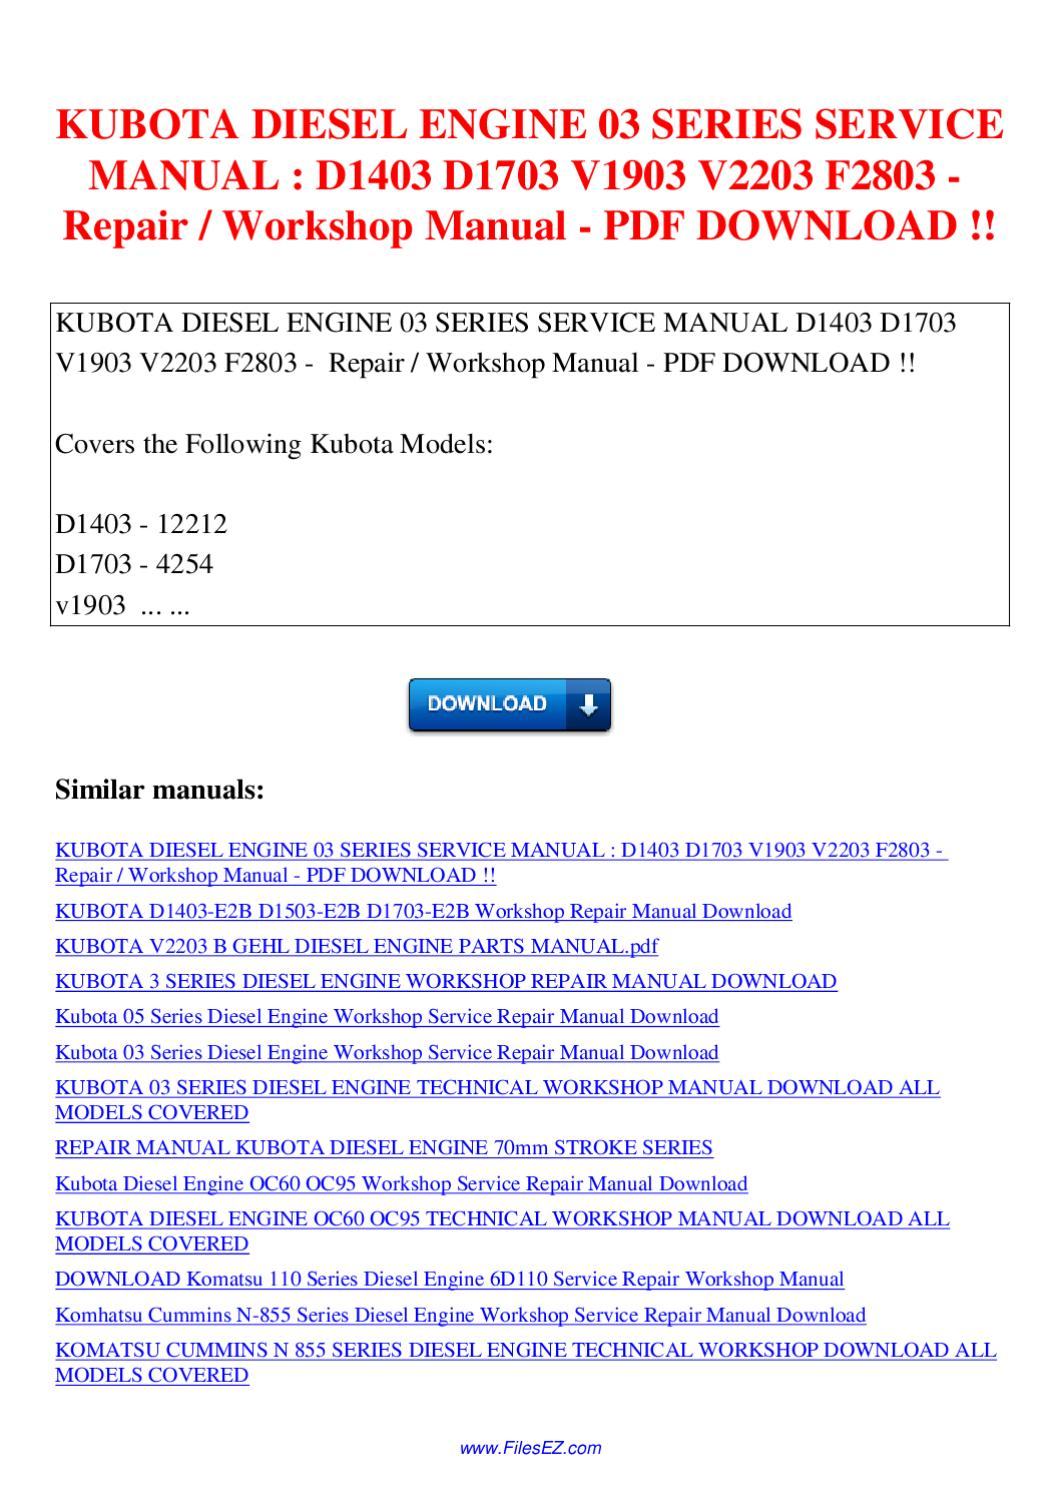 KUBOTA DIESEL ENGINE 03 SERIES SERVICE MANUAL D1403 D1703 V1903 V2203 F2803 Repair  Workshop by Nana Hong - issuu